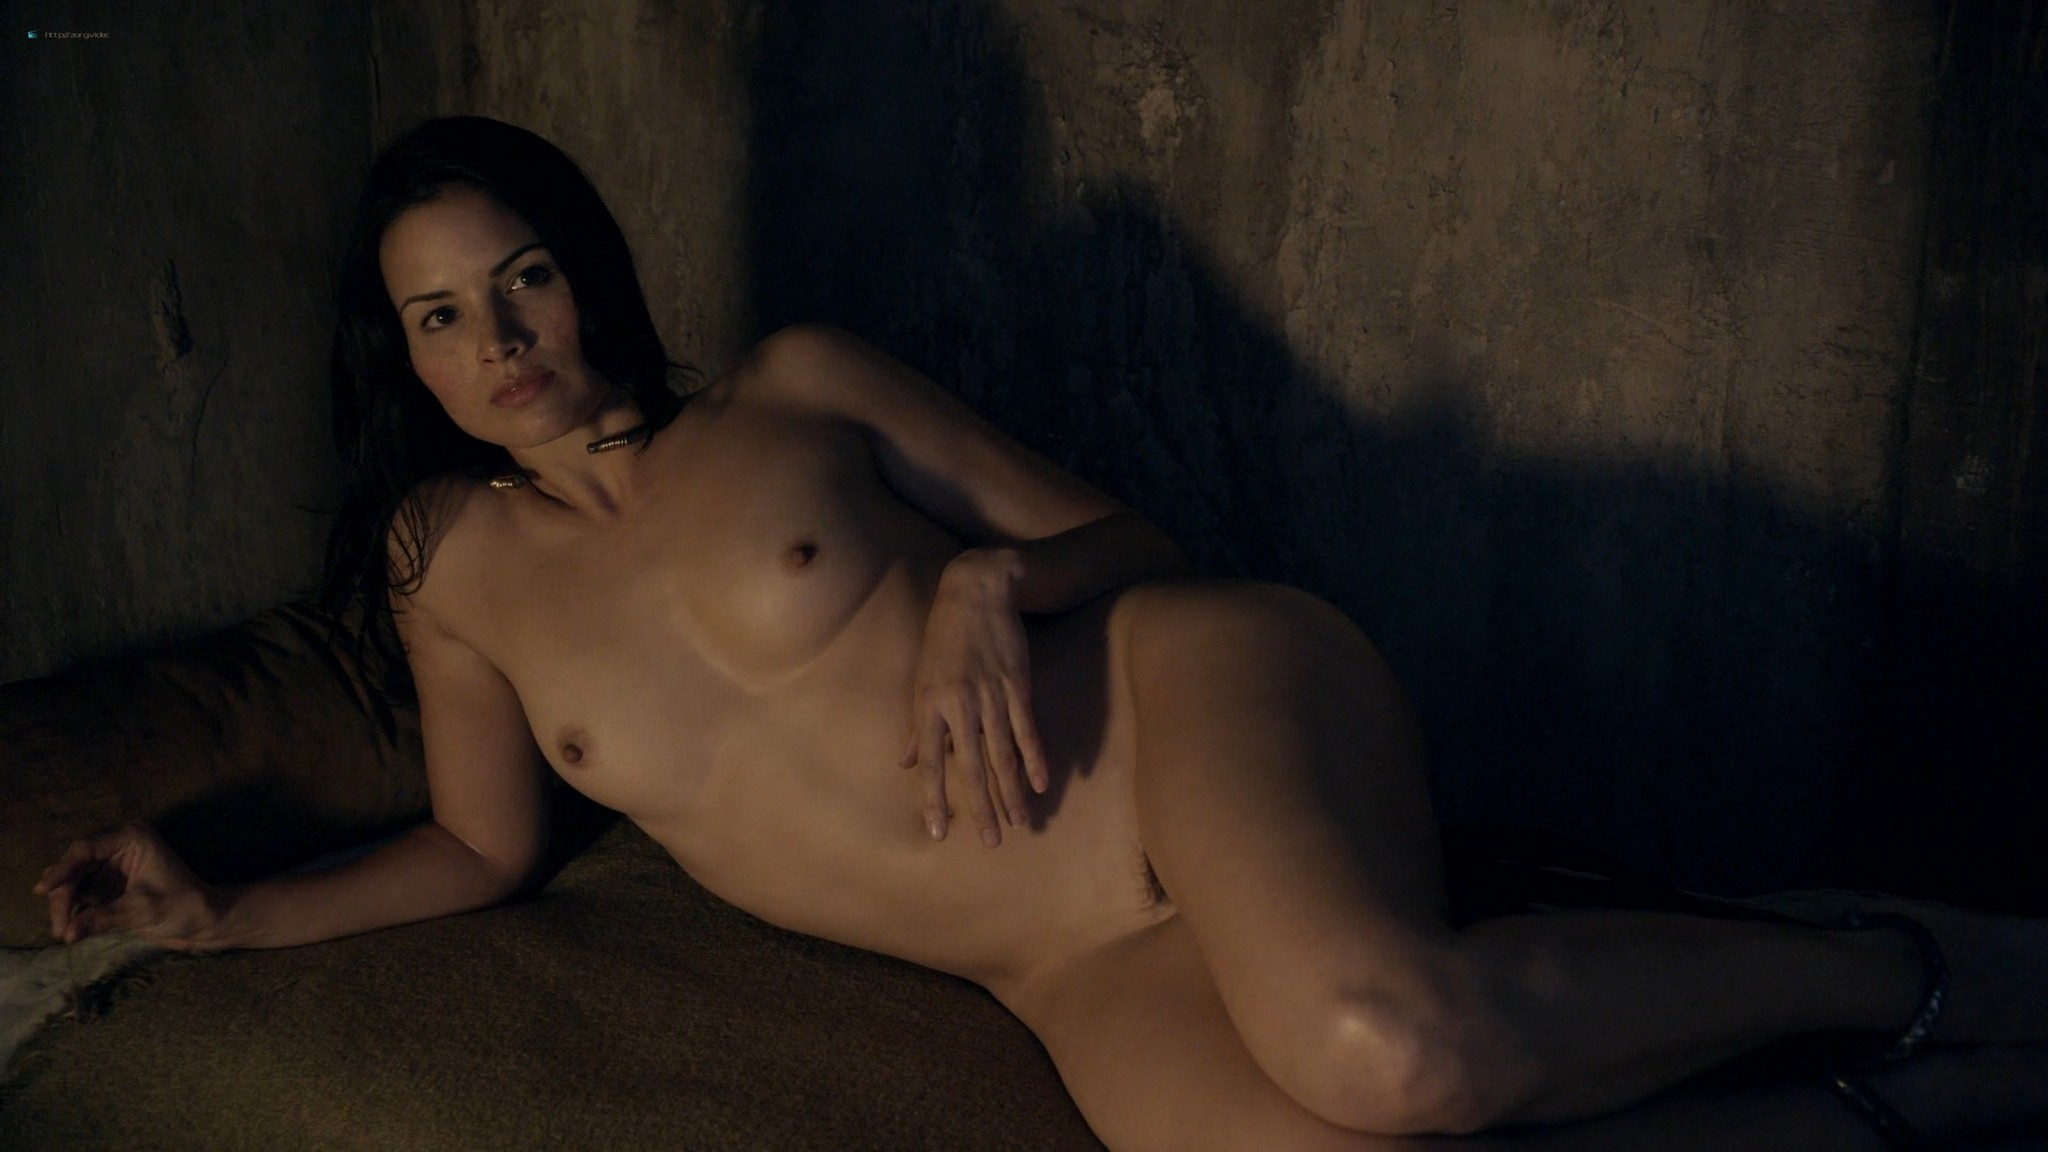 Lucy Lawless nude Katrina Law full-frontal Viva Bianca, etc nude - Spartacus (2010) Whore s1e9 HD 1080p BluRay (14)